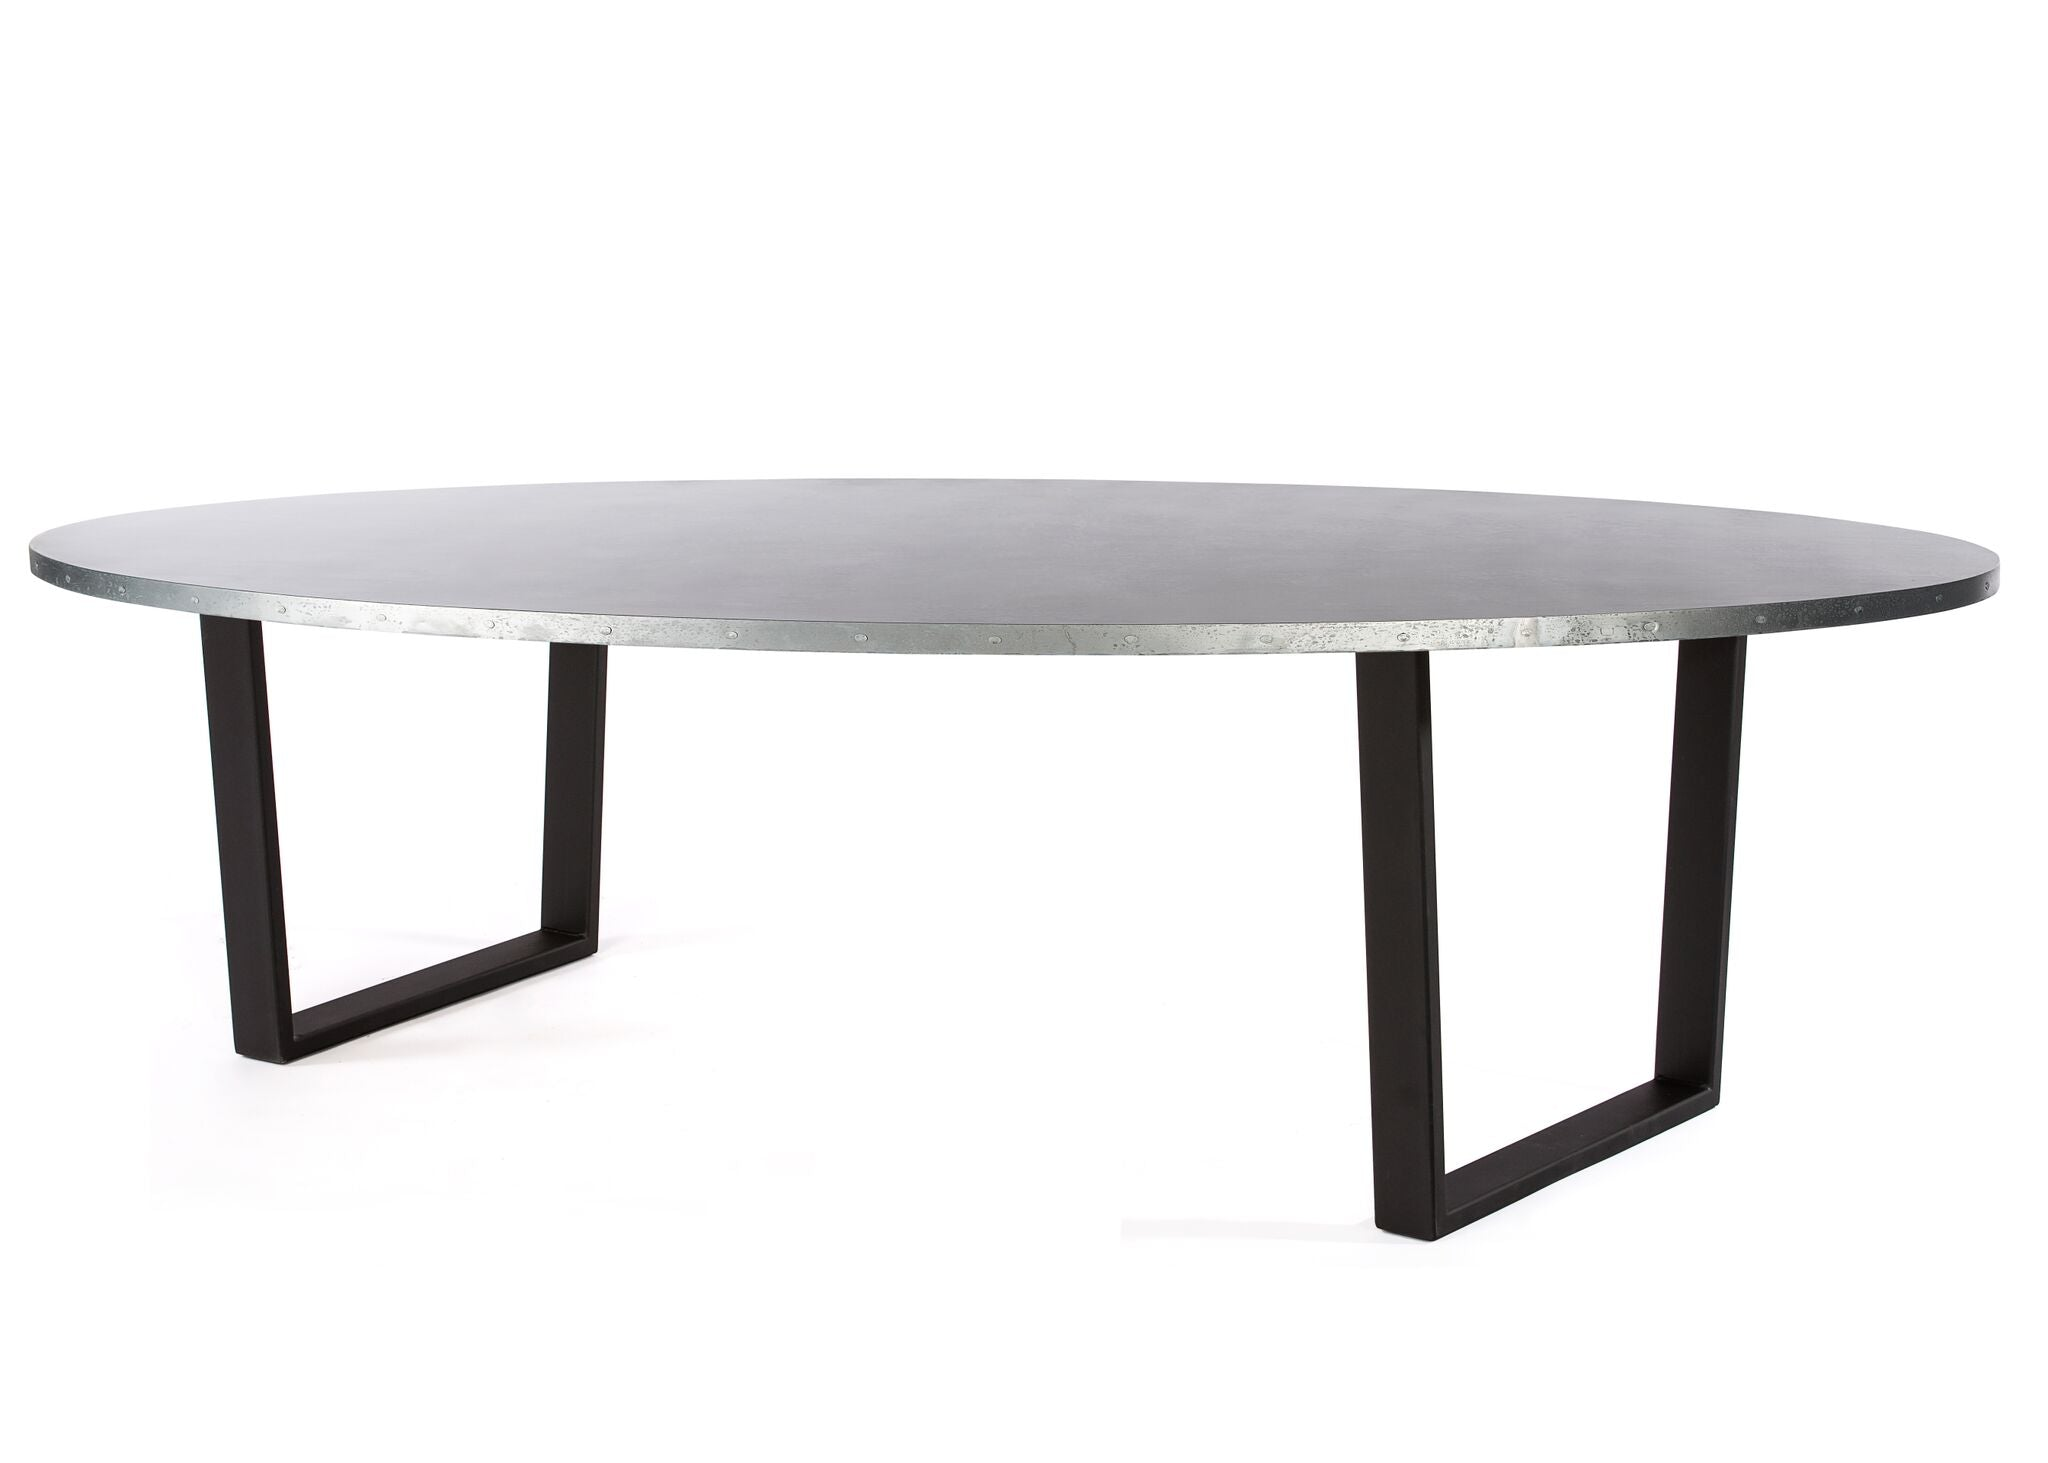 Zinc Oval Tables | Trenton Table | CLASSIC | Black | CUSTOM SIZE L 60 W 37 H 30 | 2"